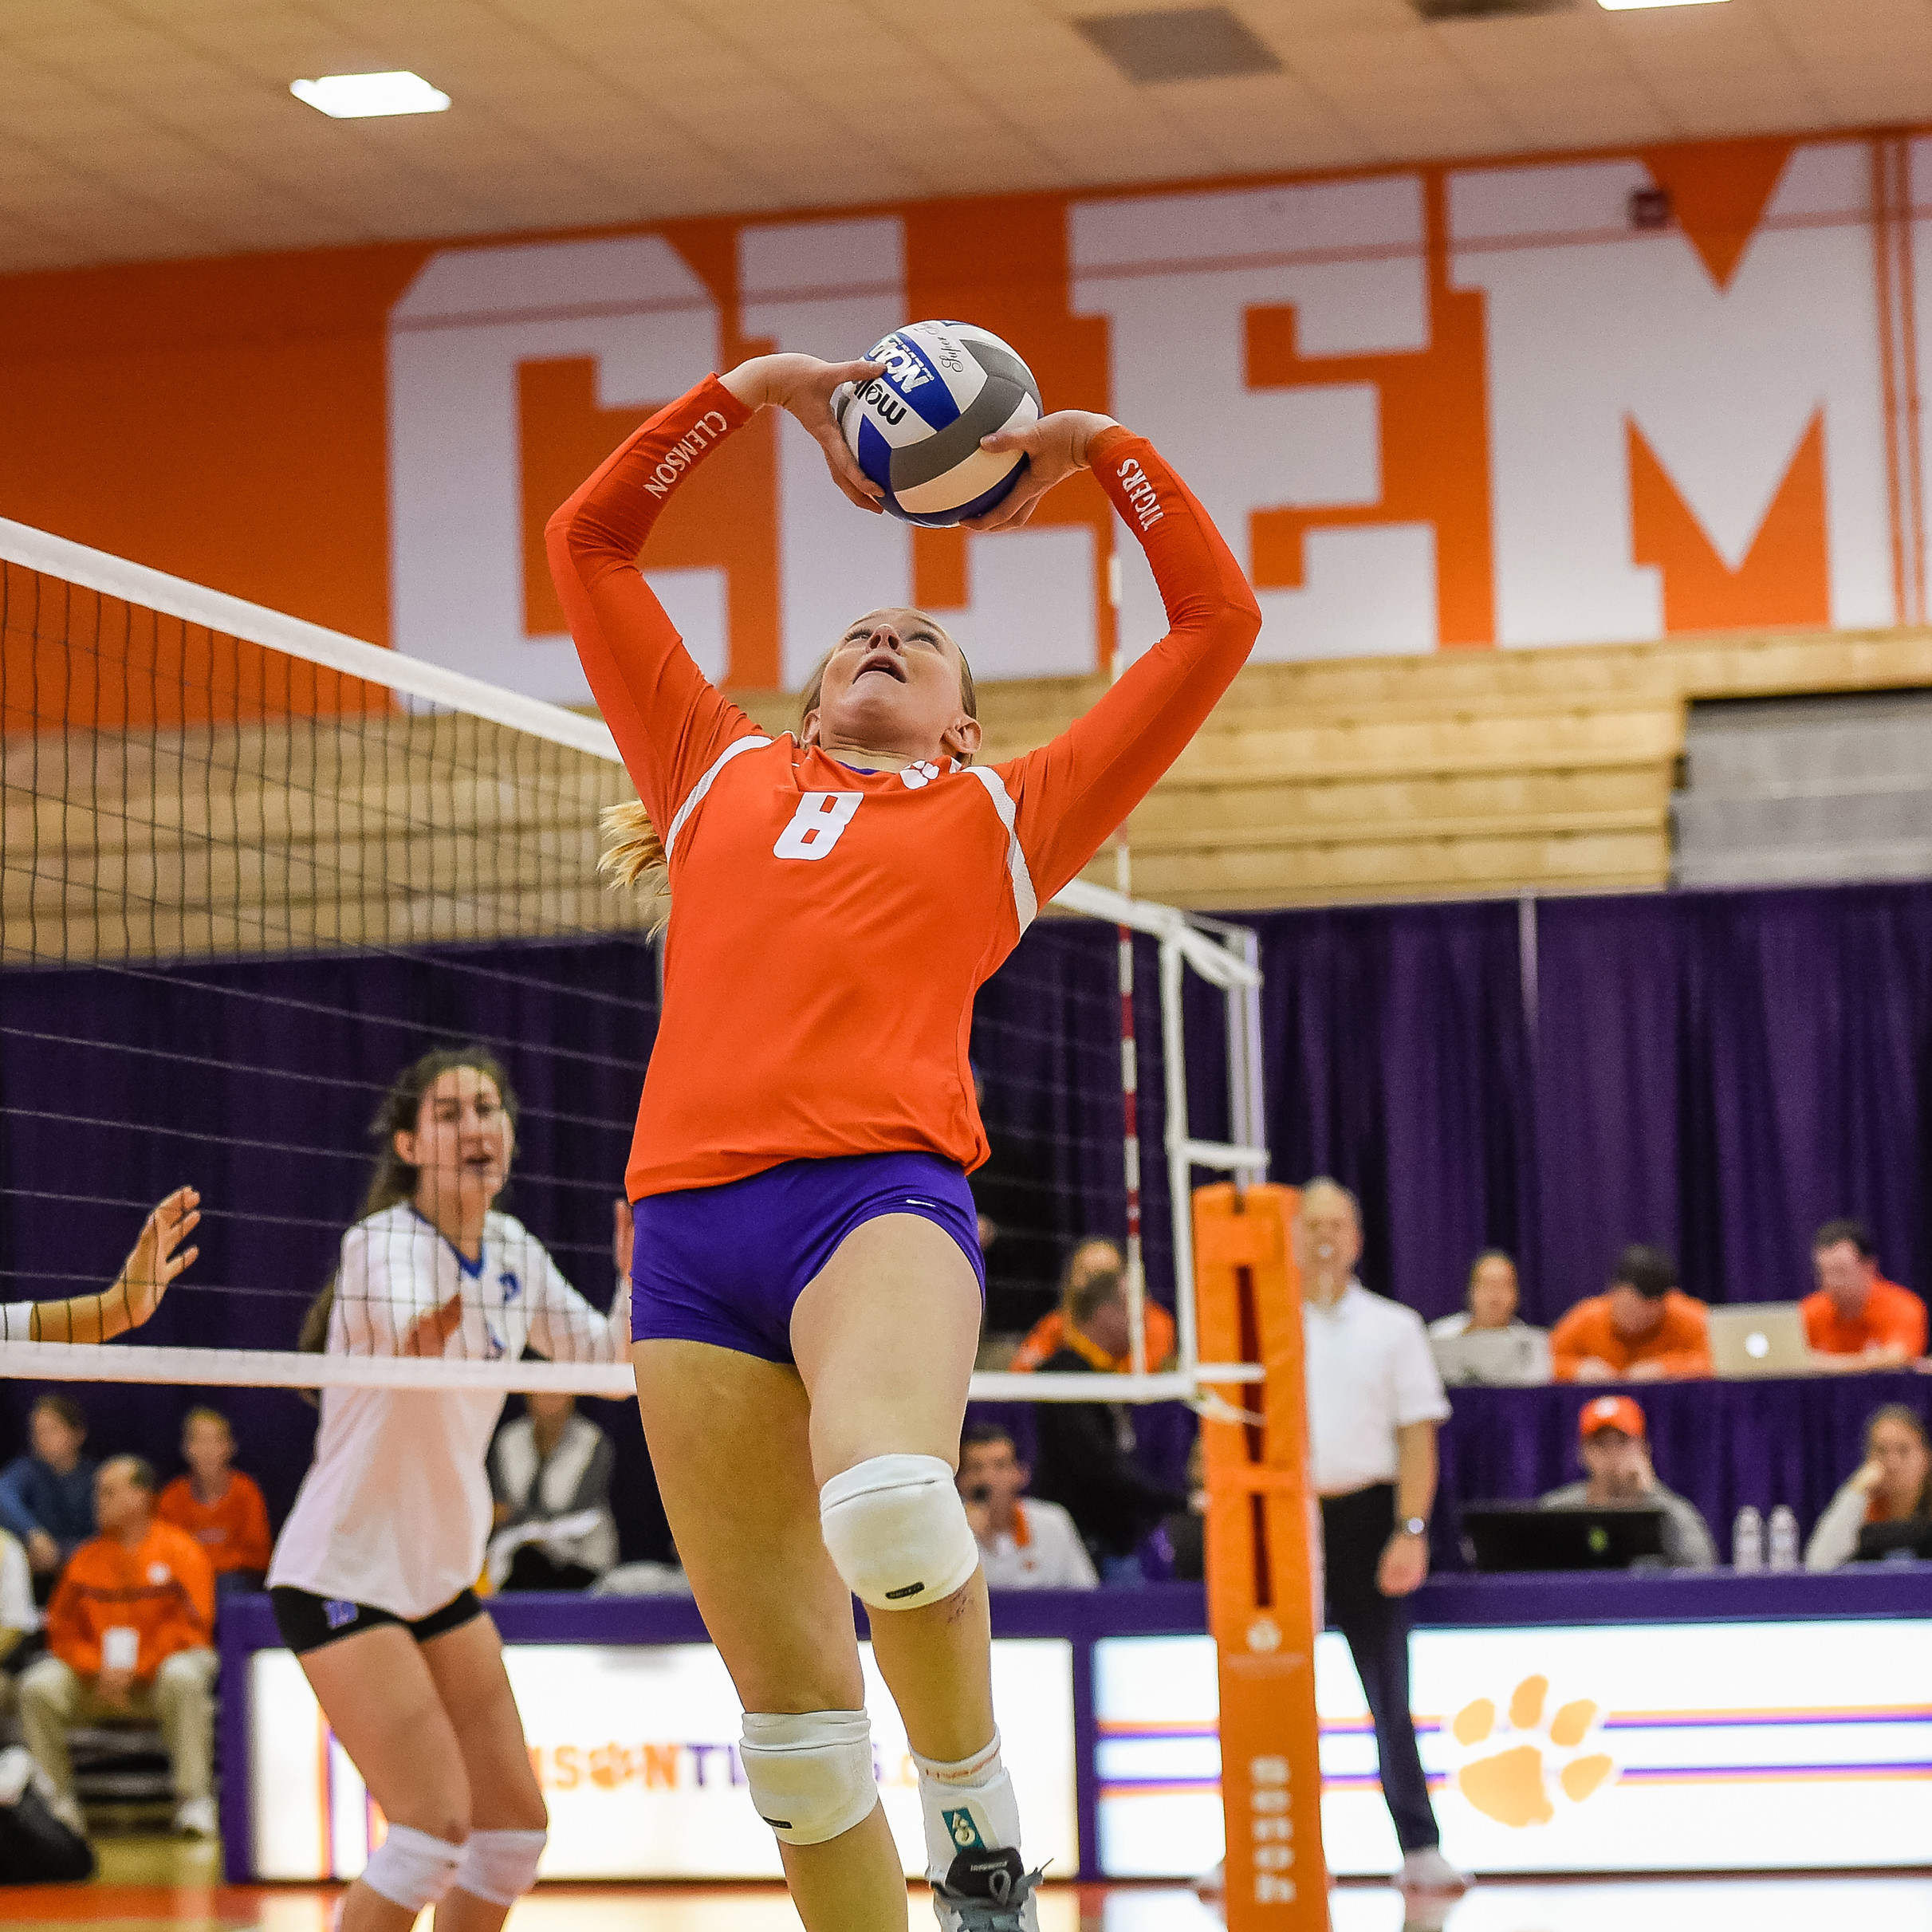 Tigers Fall To #17 Louisville